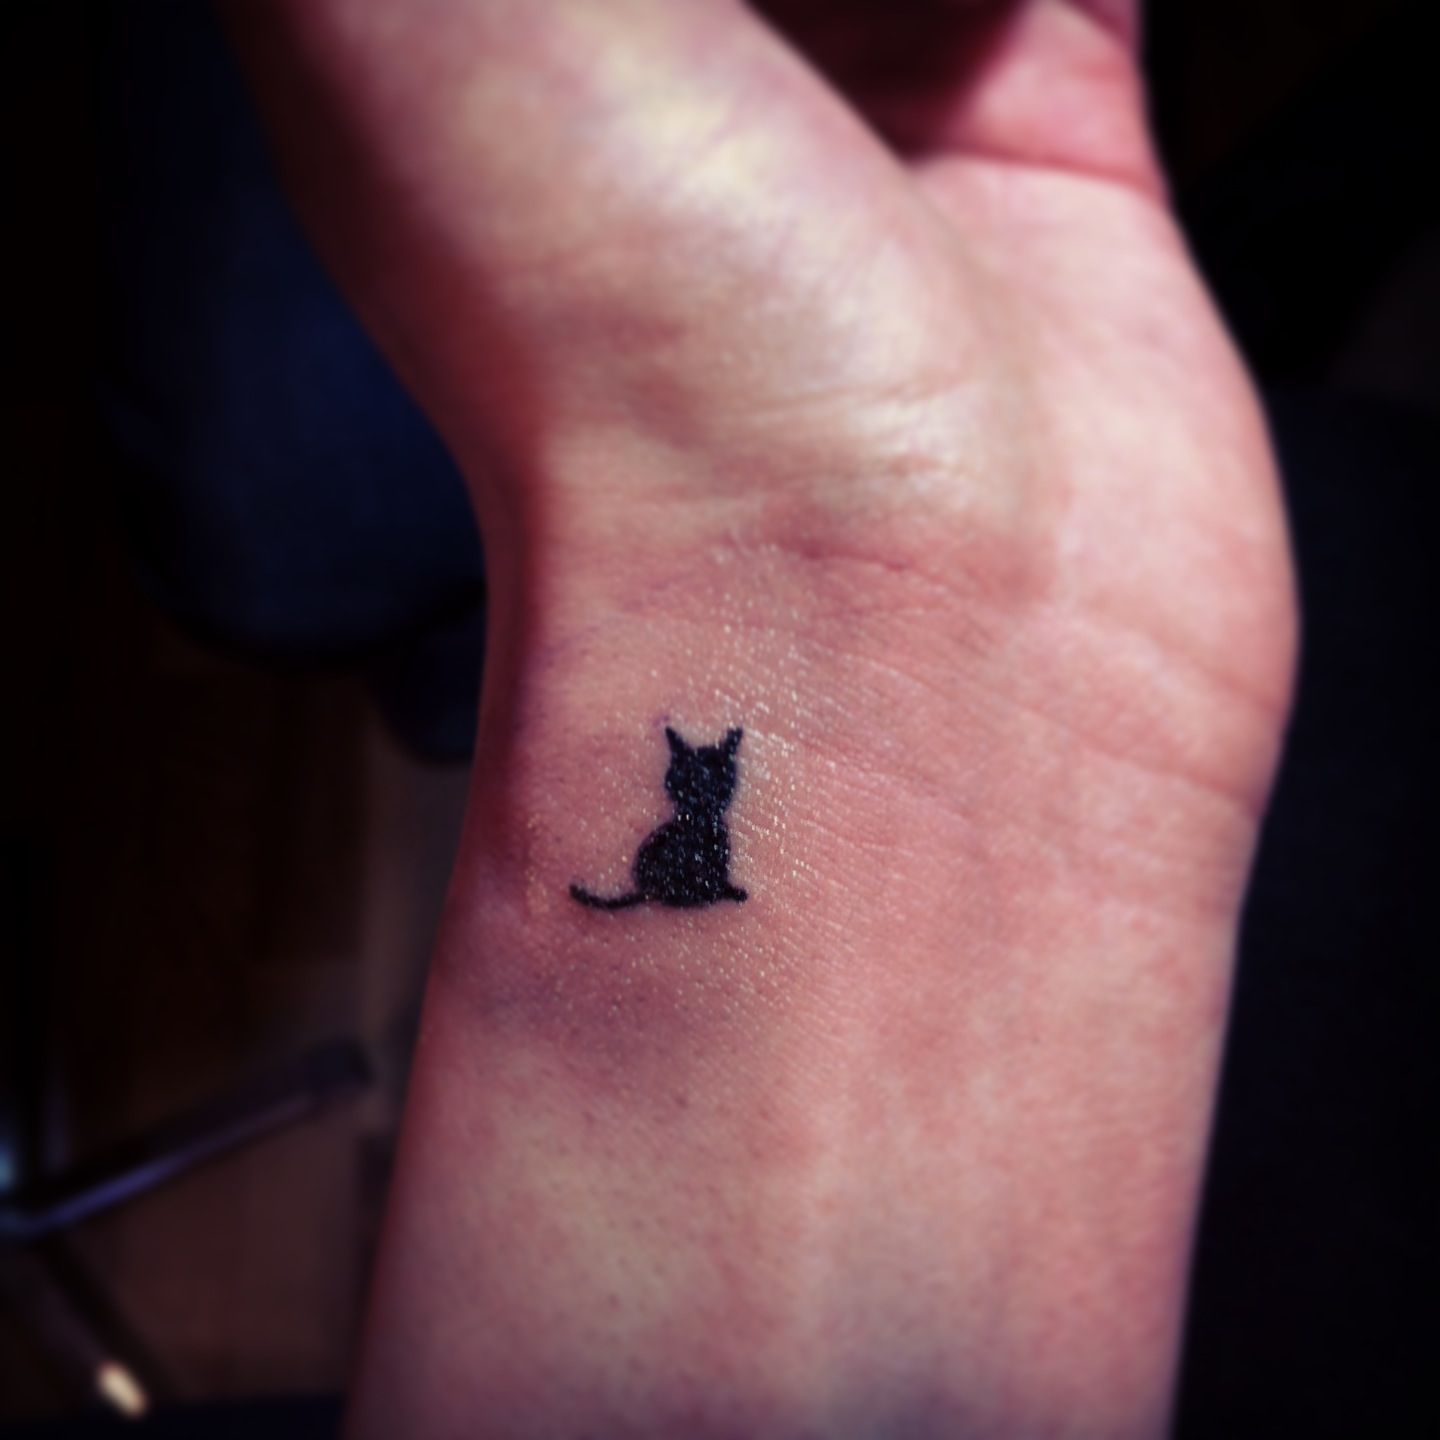 Simple tattoo ideas on wrist my kitty cat tattoo i think behind the ear in honor of my late baby